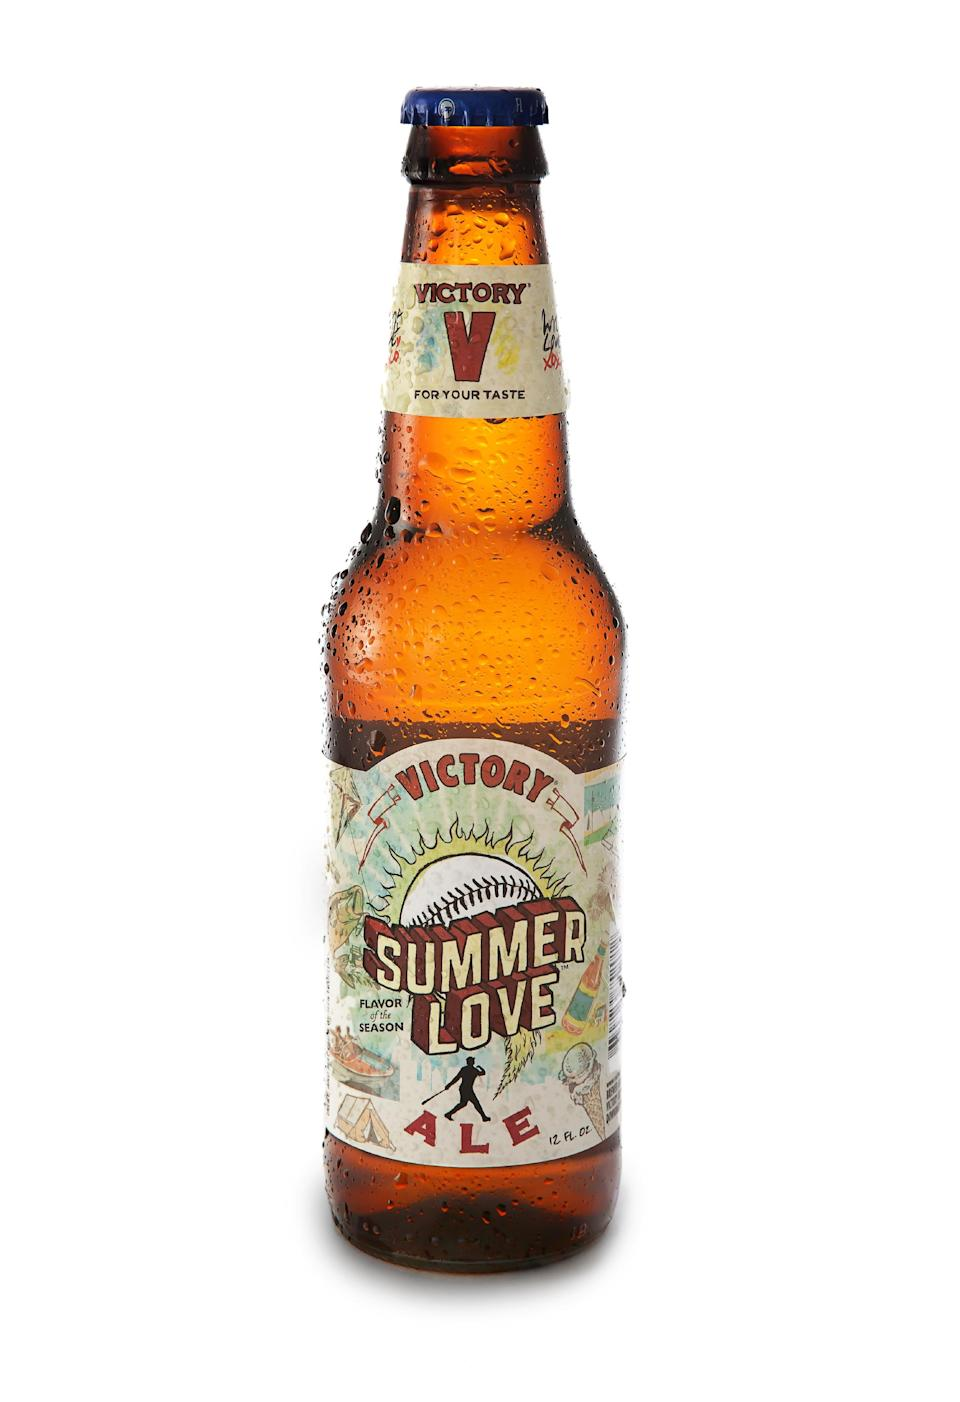 In this May 25, 2011 publicity photo provided by Victory Brewing Company, a bottle of Summer Love ale is shown in Wilmington, Del. (AP Photo/Victory Brewing Company, Jessica Bratton)